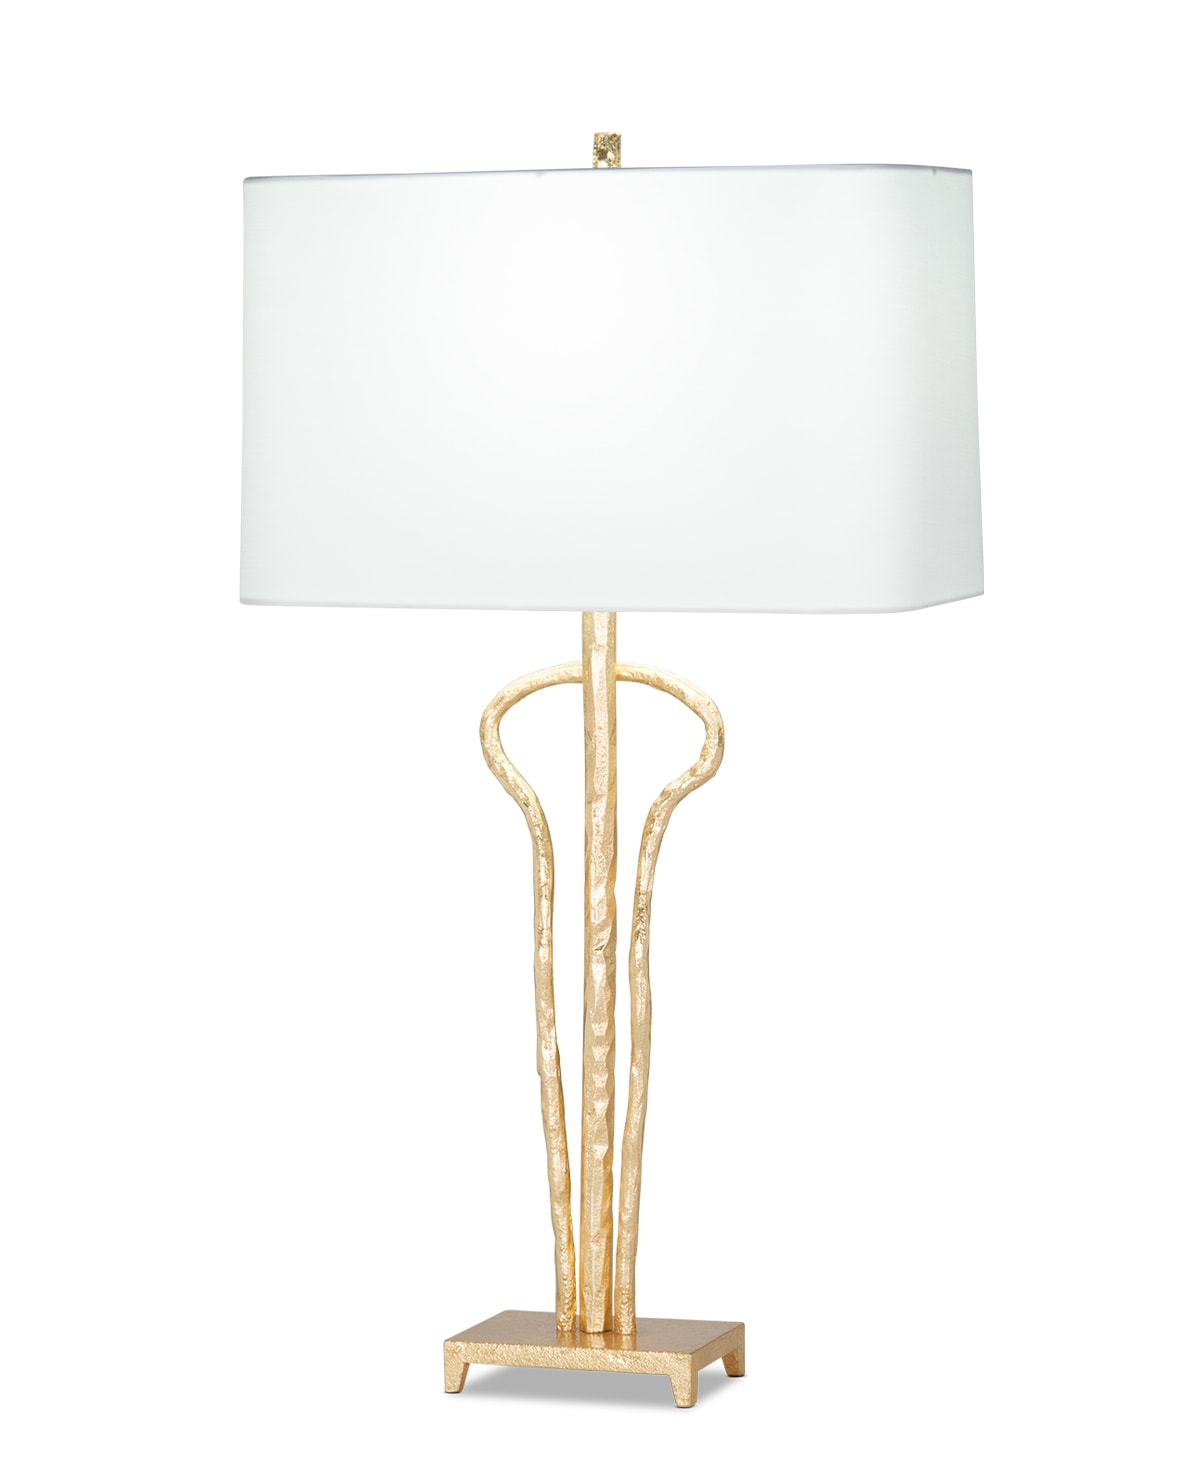 FlowDecor Evelyn Table Lamp in metal with gold leaf finish and off-white cotton rounded rectangle shade (# 4494)